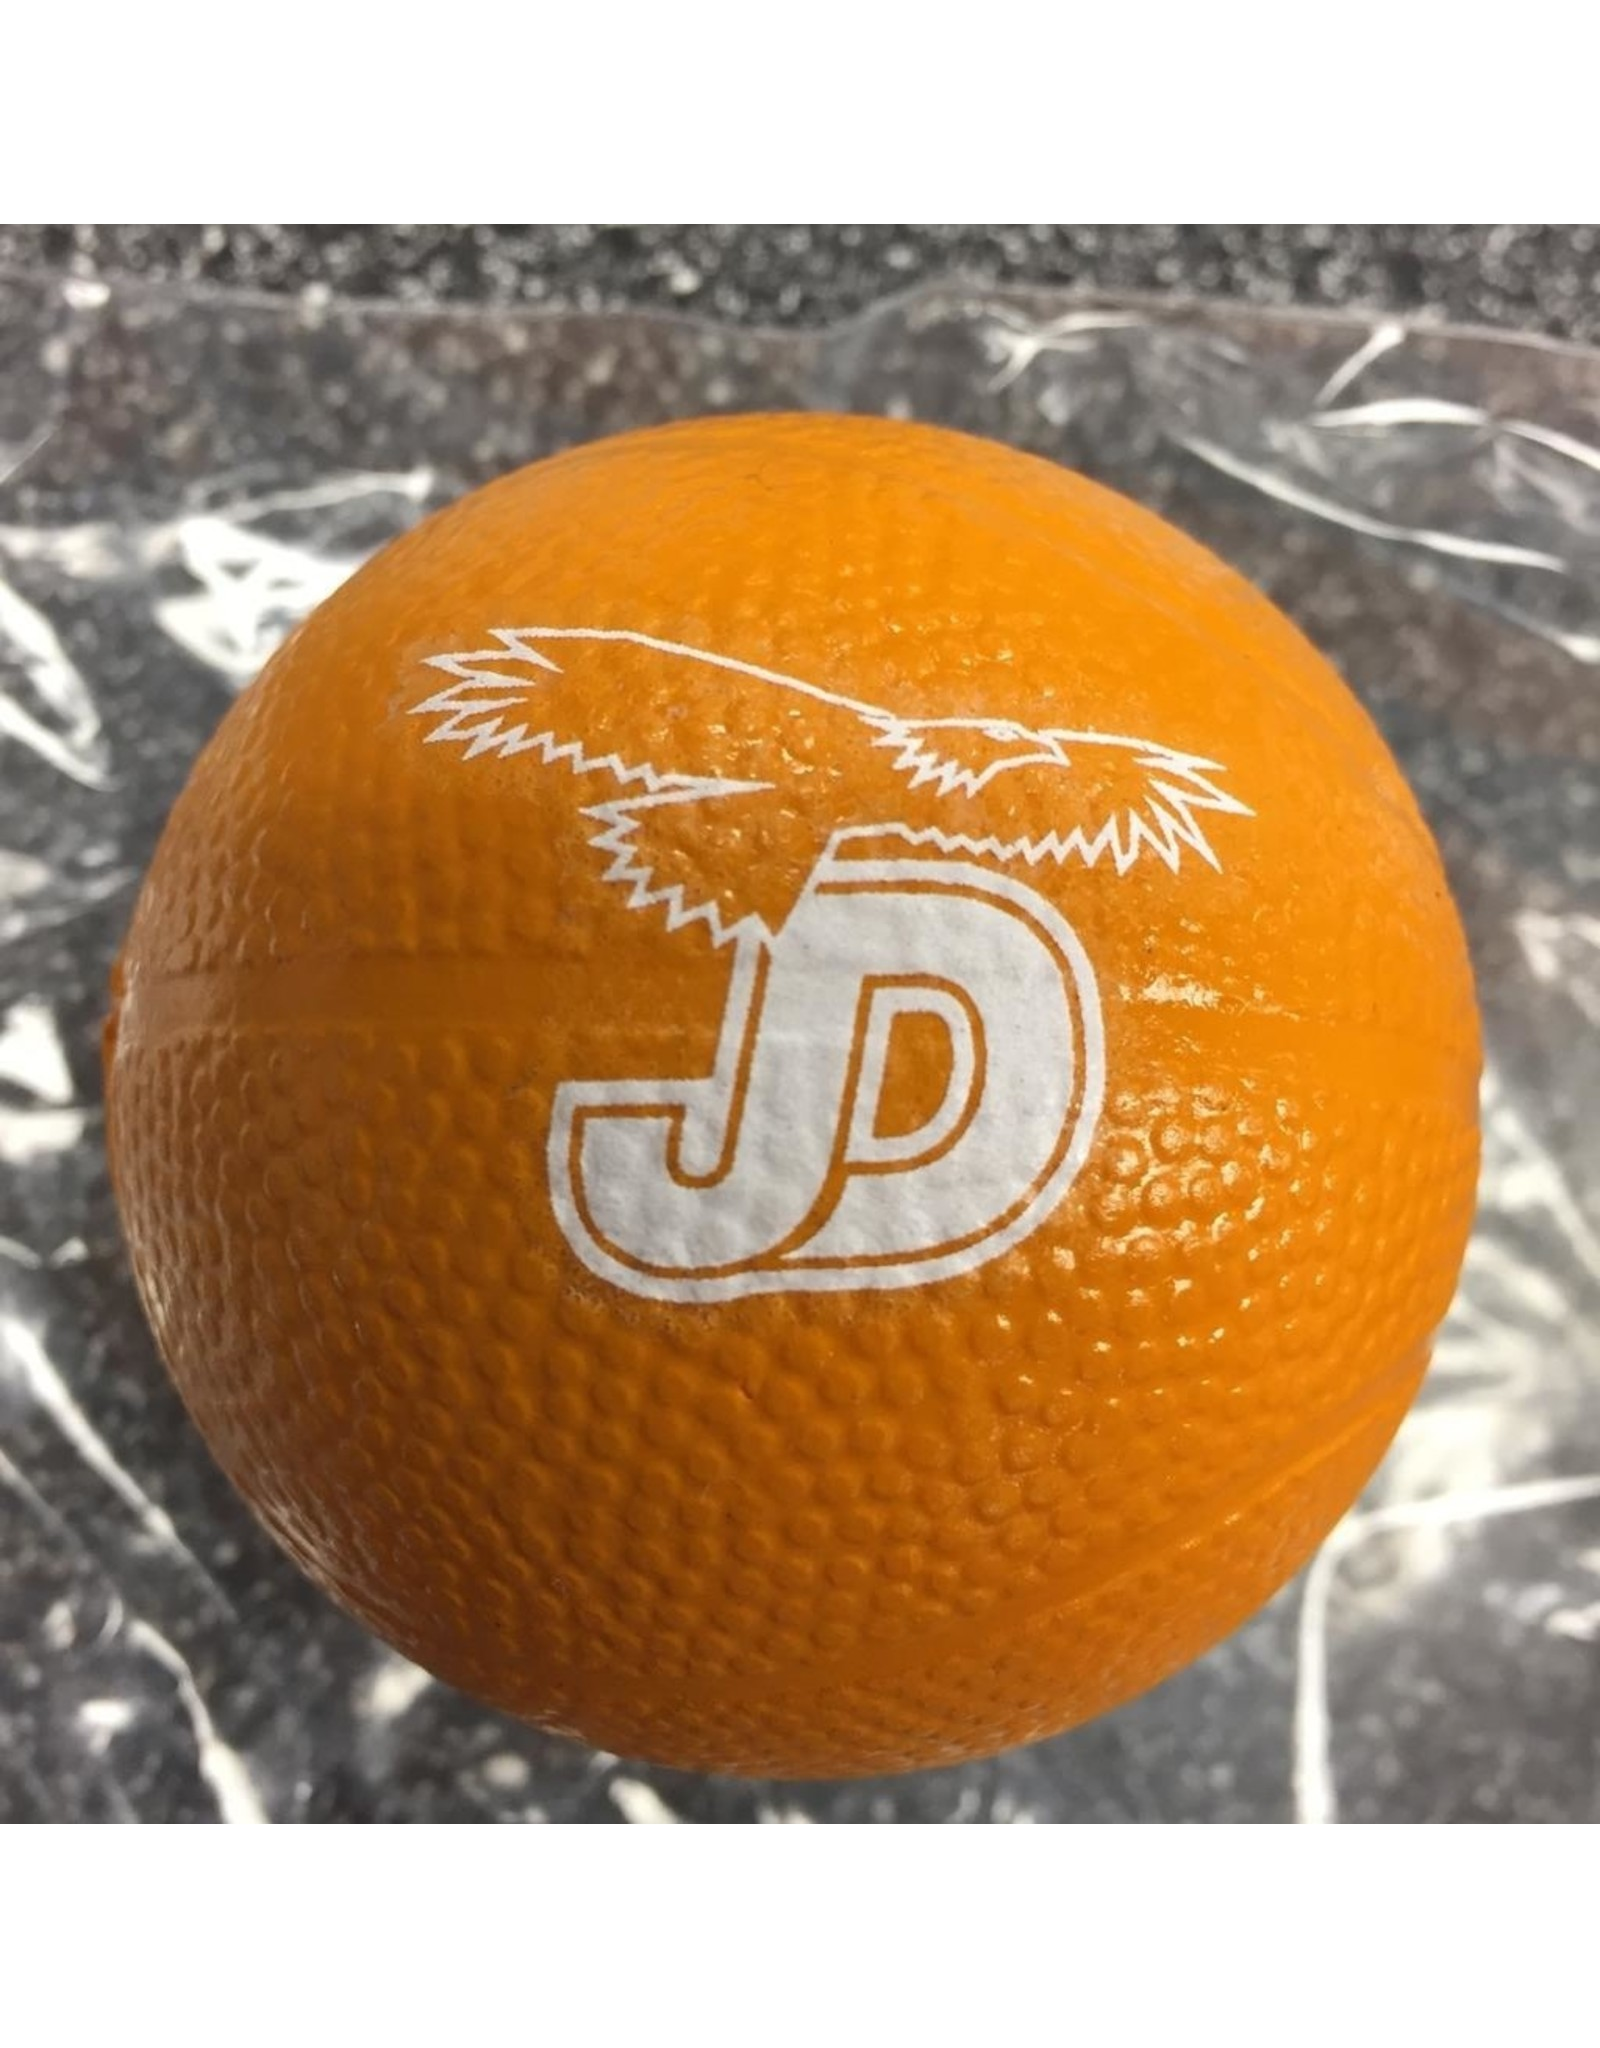 NON-UNIFORM JD Basketball -  Mini Foam Ball